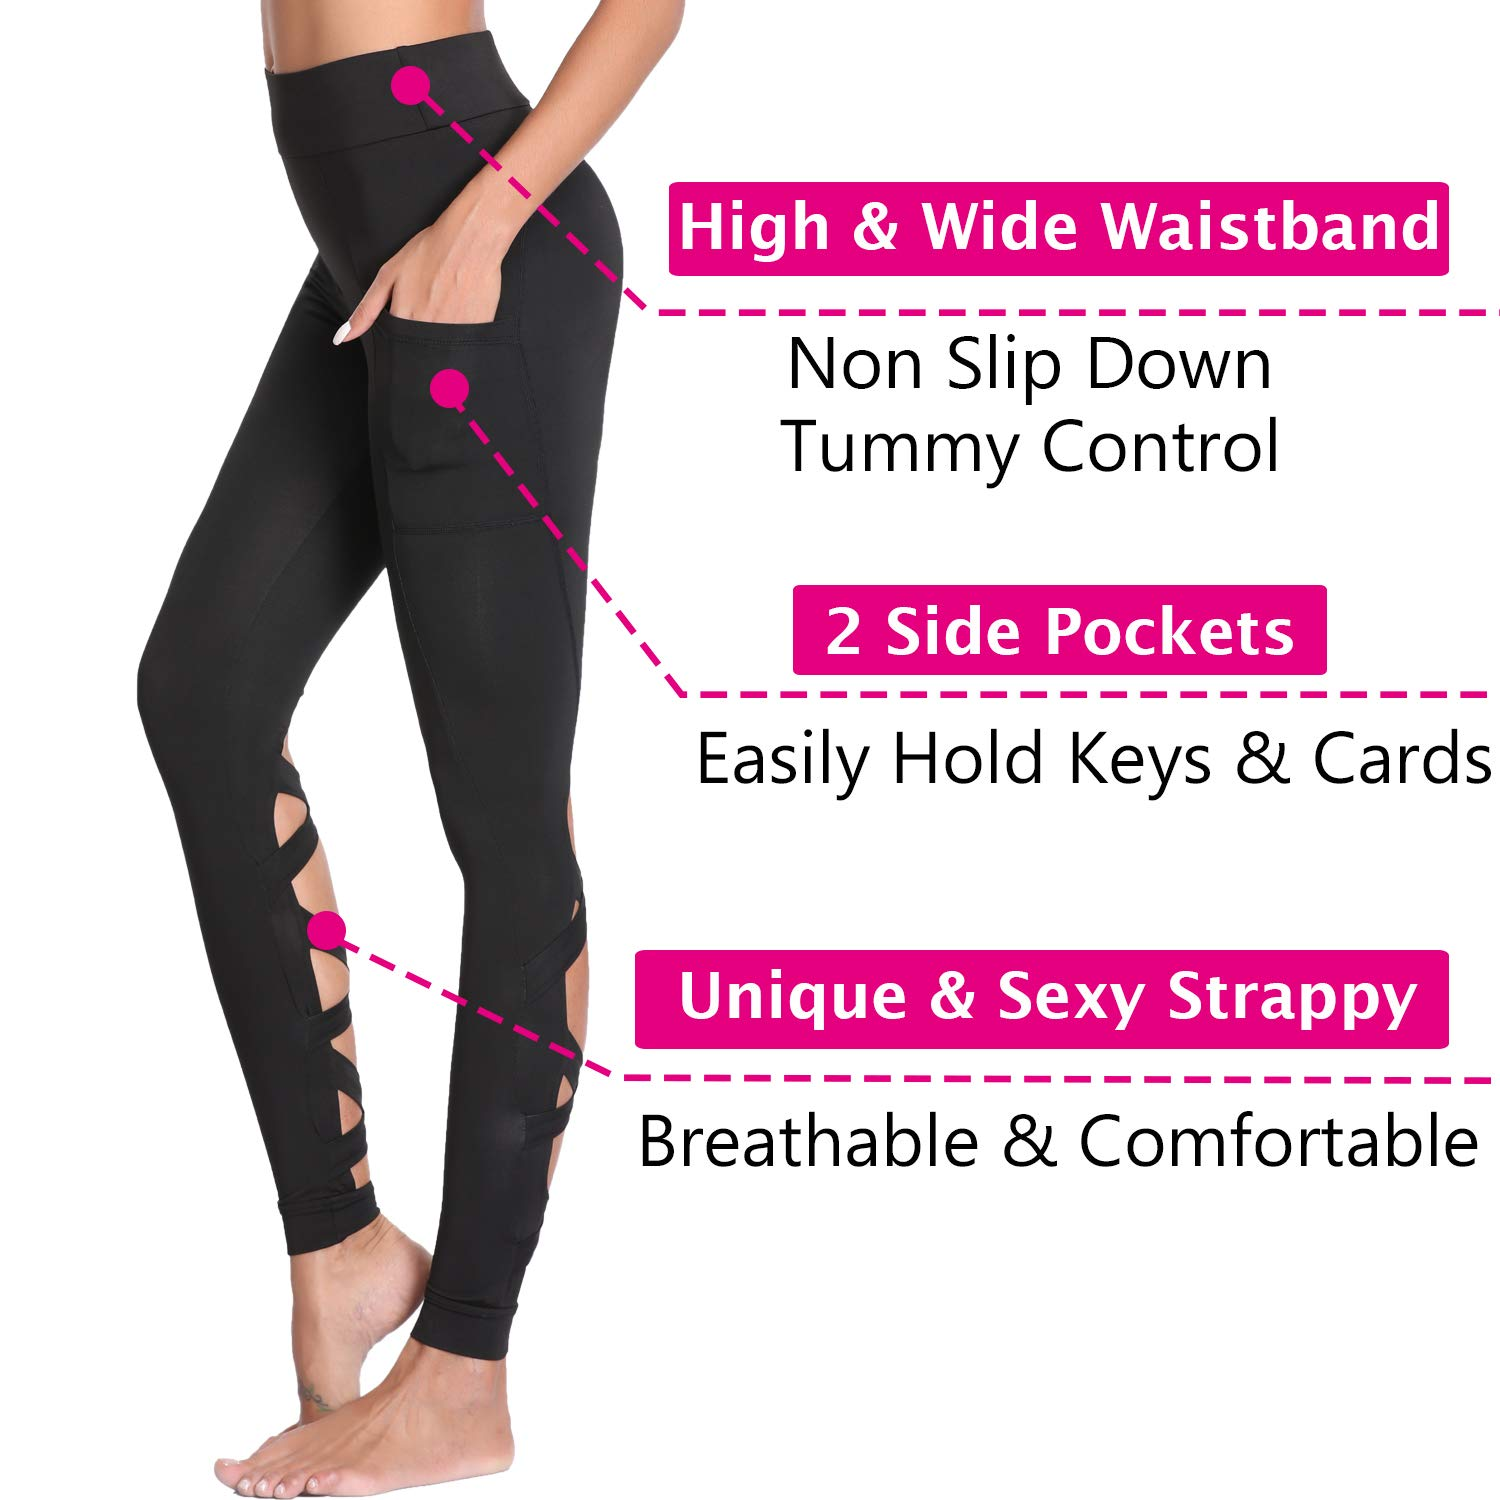 523eafdca097f2 Amazon.com: Joyshaper Workout Leggings for Women with Pockets Cutout  Strappy Tights High Waist Capri Pants Running Gym Trousers: Clothing